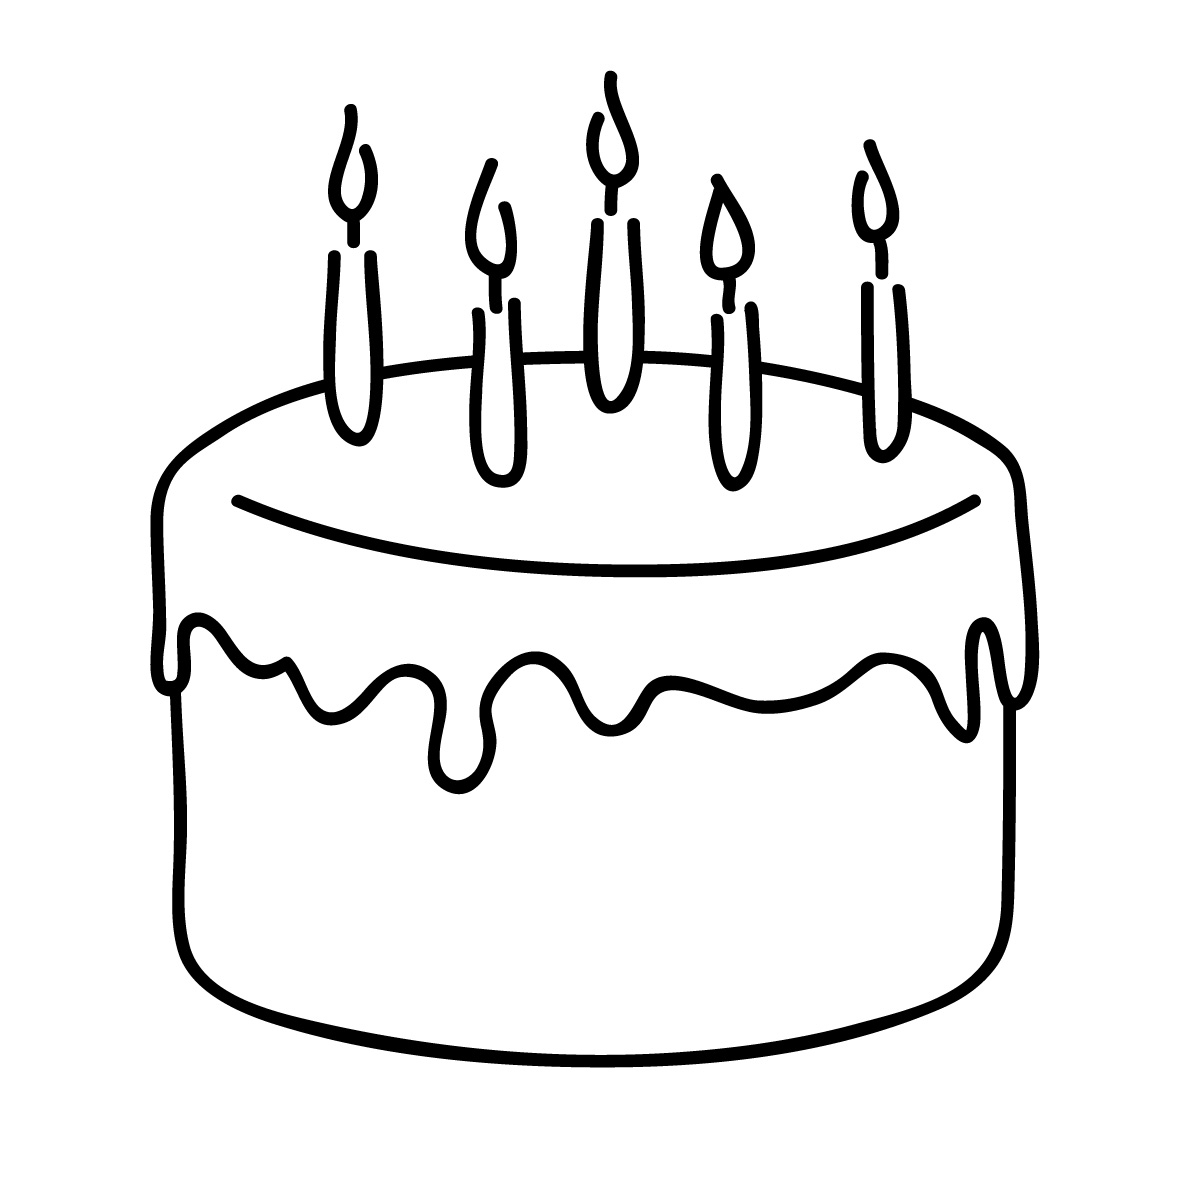 easy birthday drawings ; simple-birthday-cake-drawing-birthday-cake-clip-art-black-clip-art-pinterest-coloring